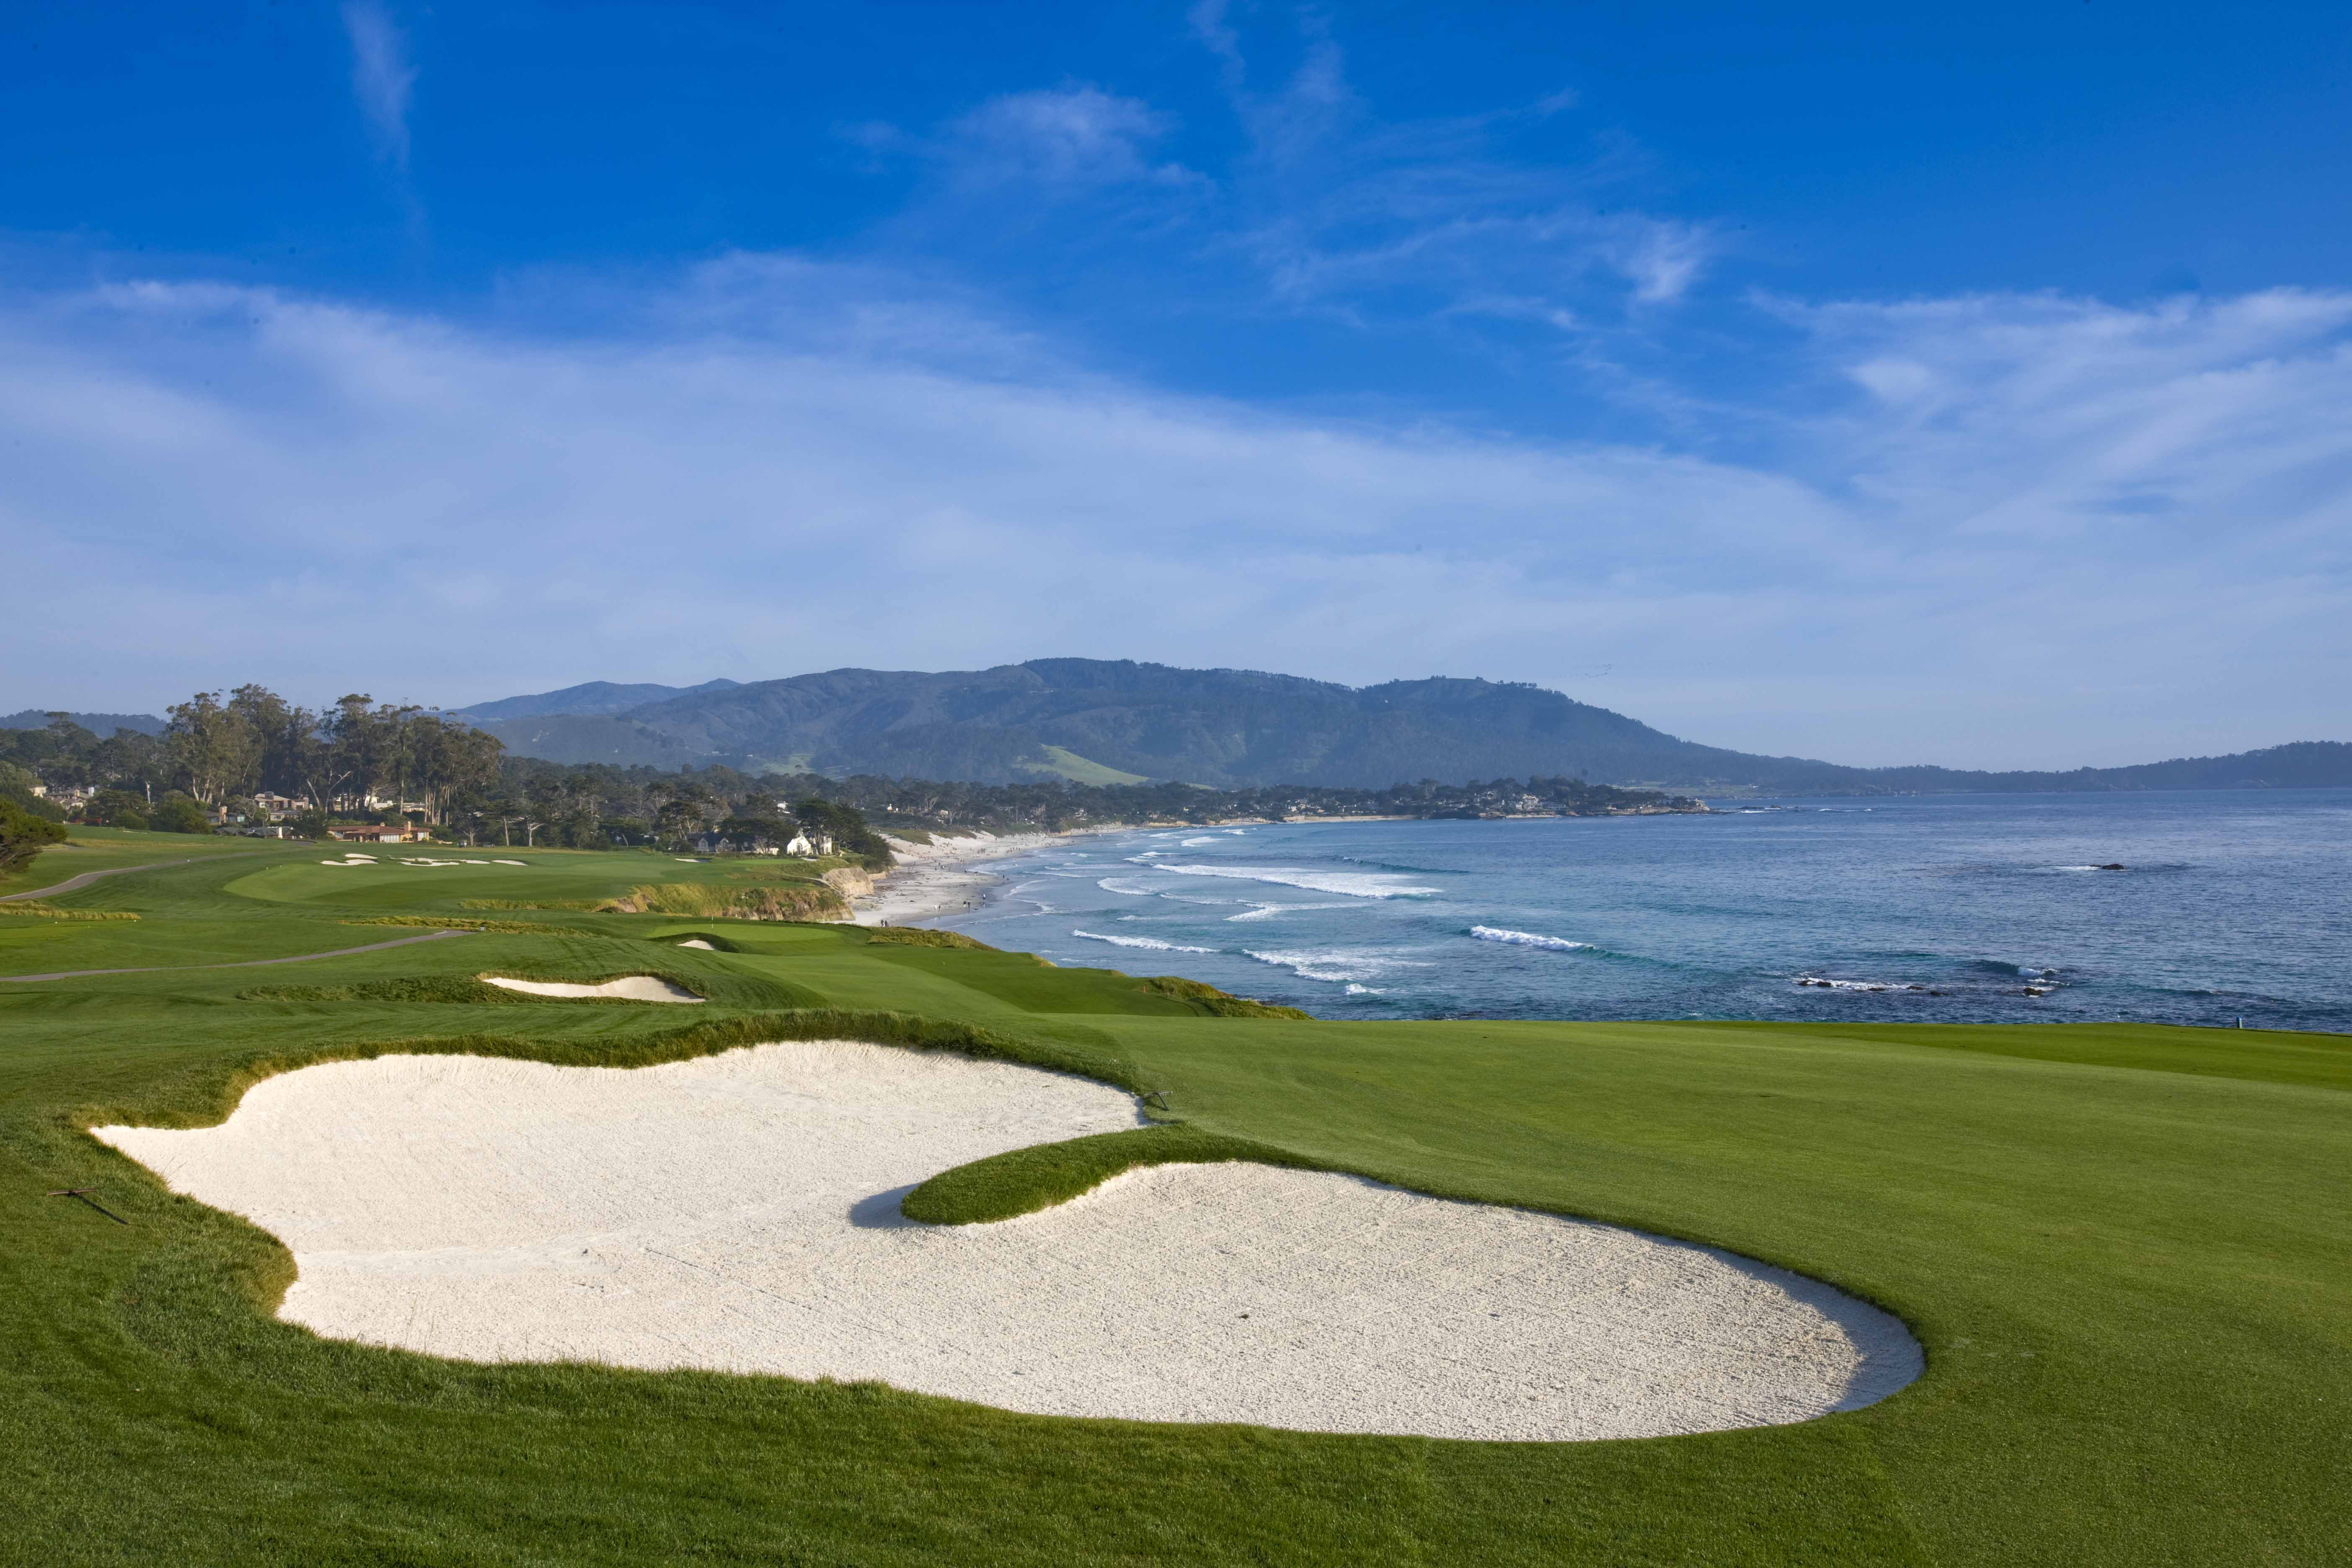 Pebble Beach Wallpapers Wallpaper Cave HD Wallpapers Download Free Images Wallpaper [1000image.com]